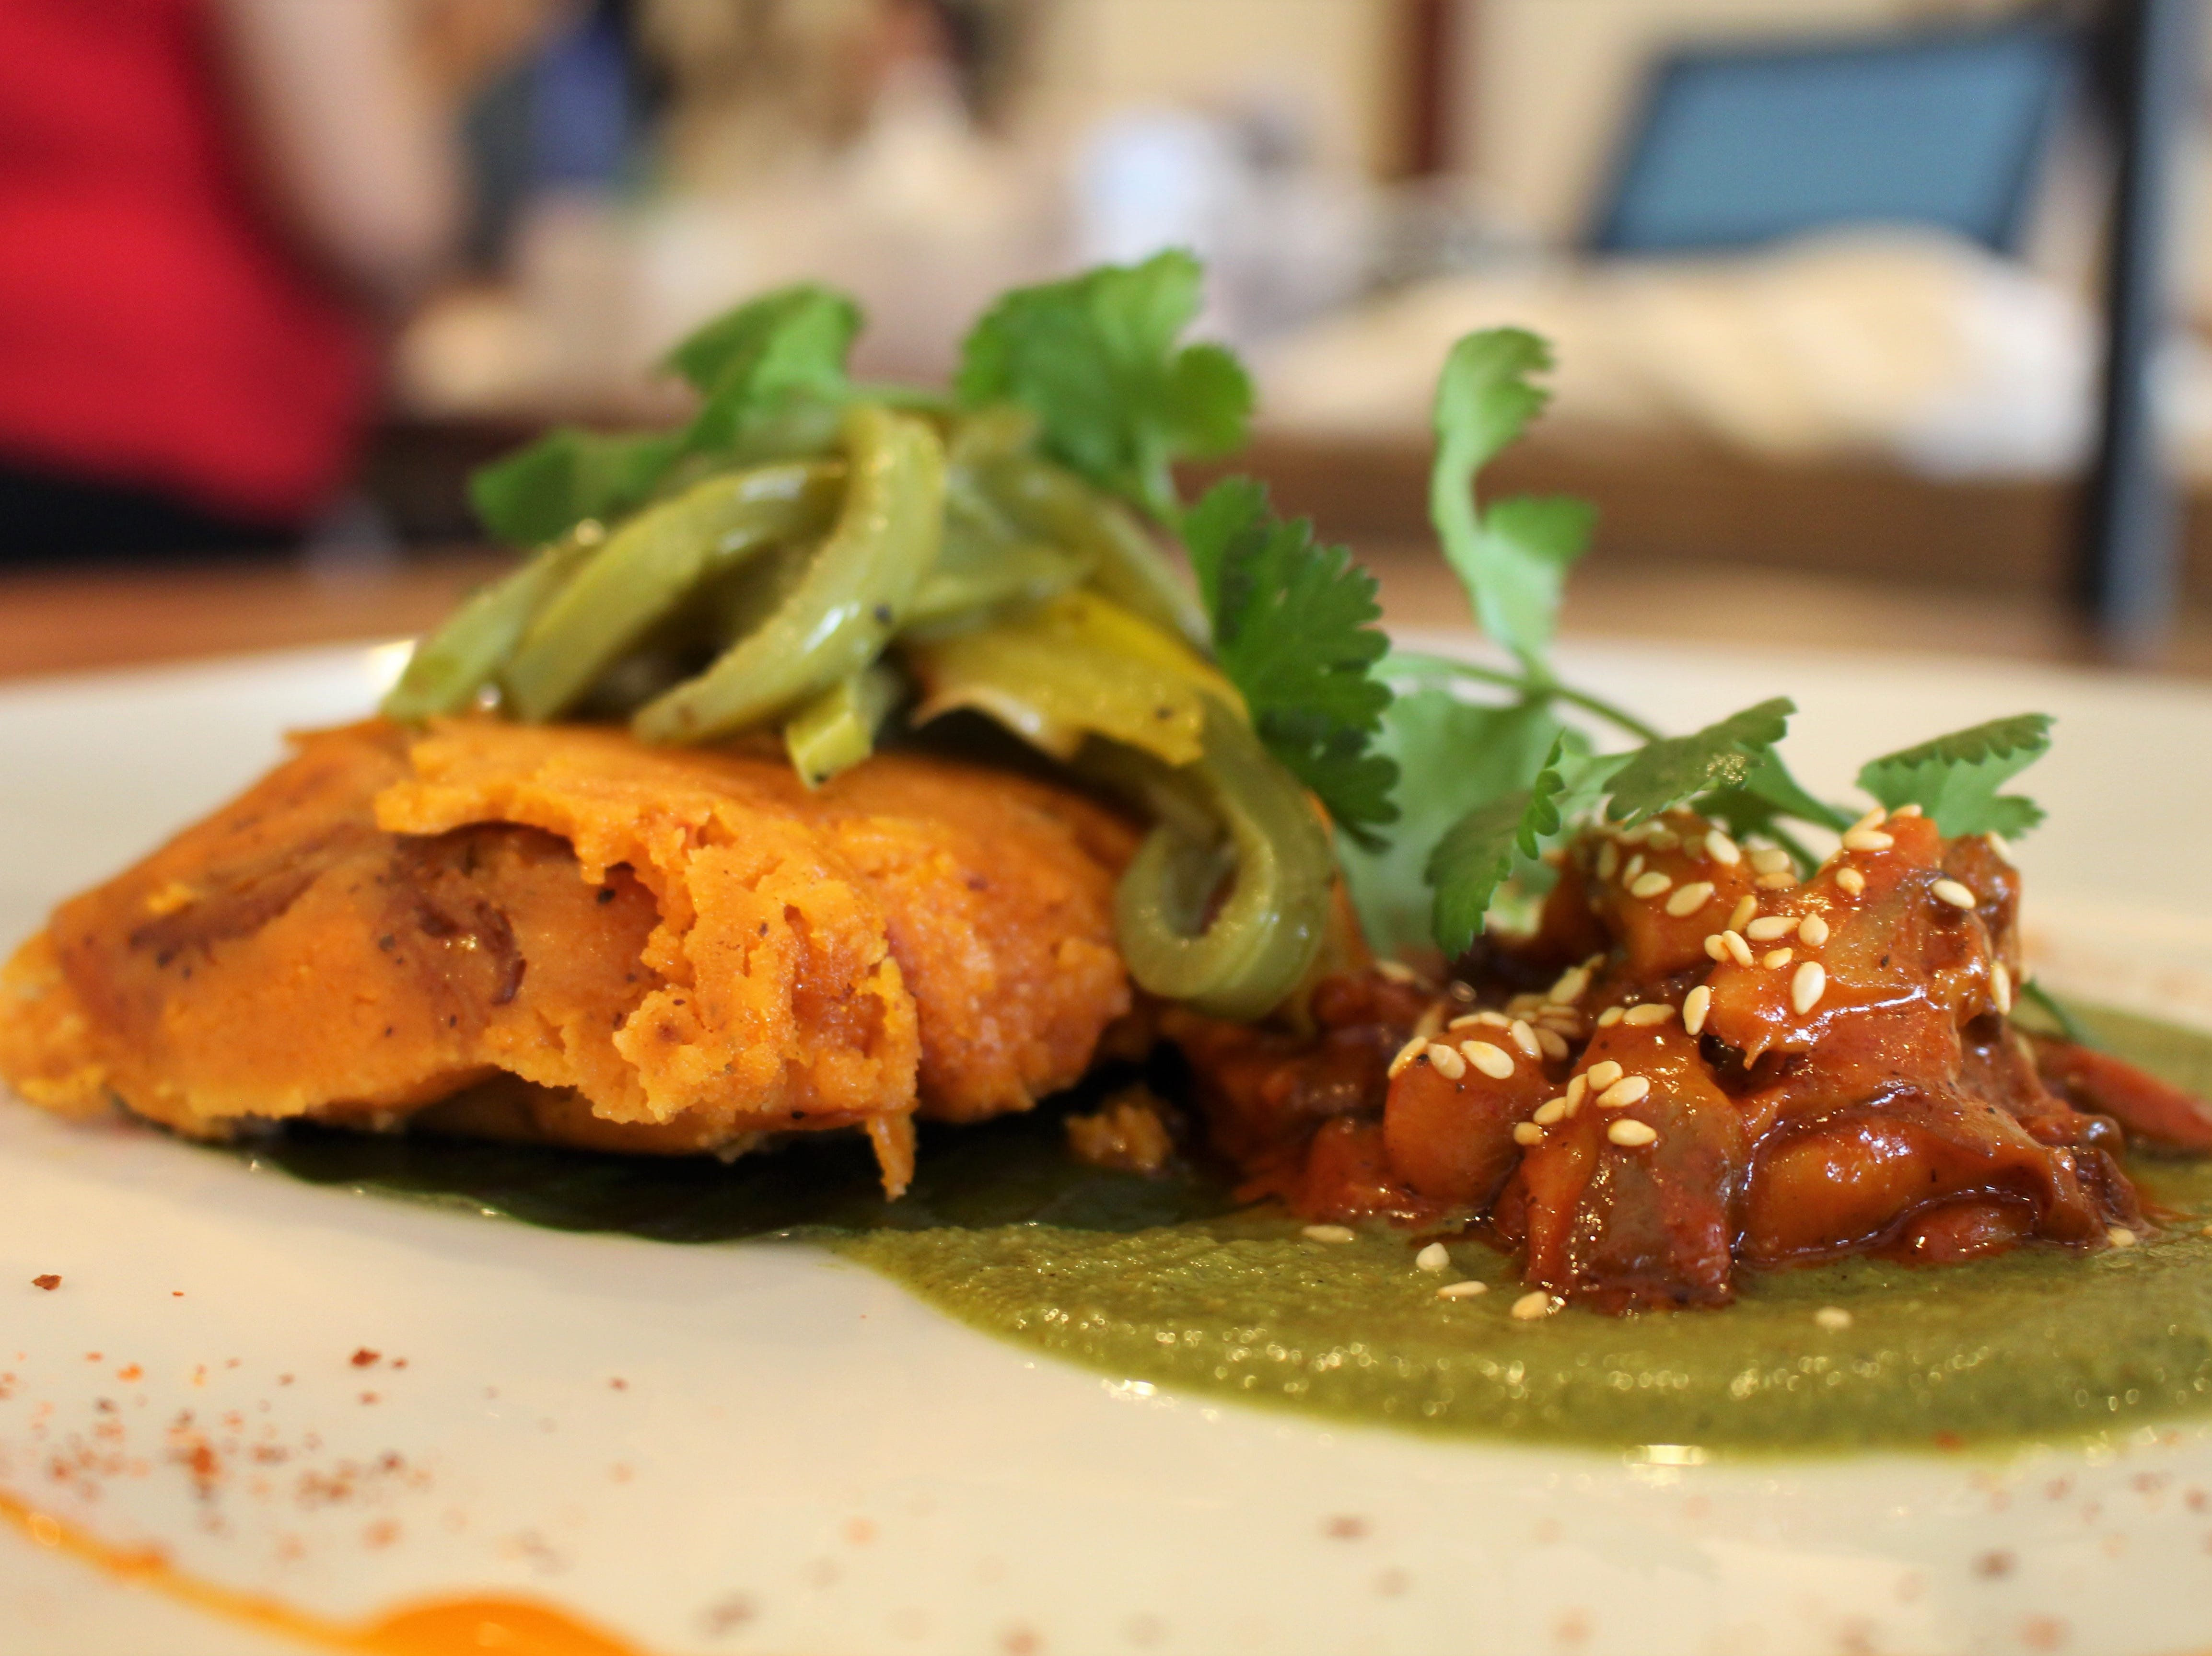 Casa Terra, a vegan fine dining restaurant in Glendale, serves a sweet potato tamal filled with pibil-style oyster mushrooms.